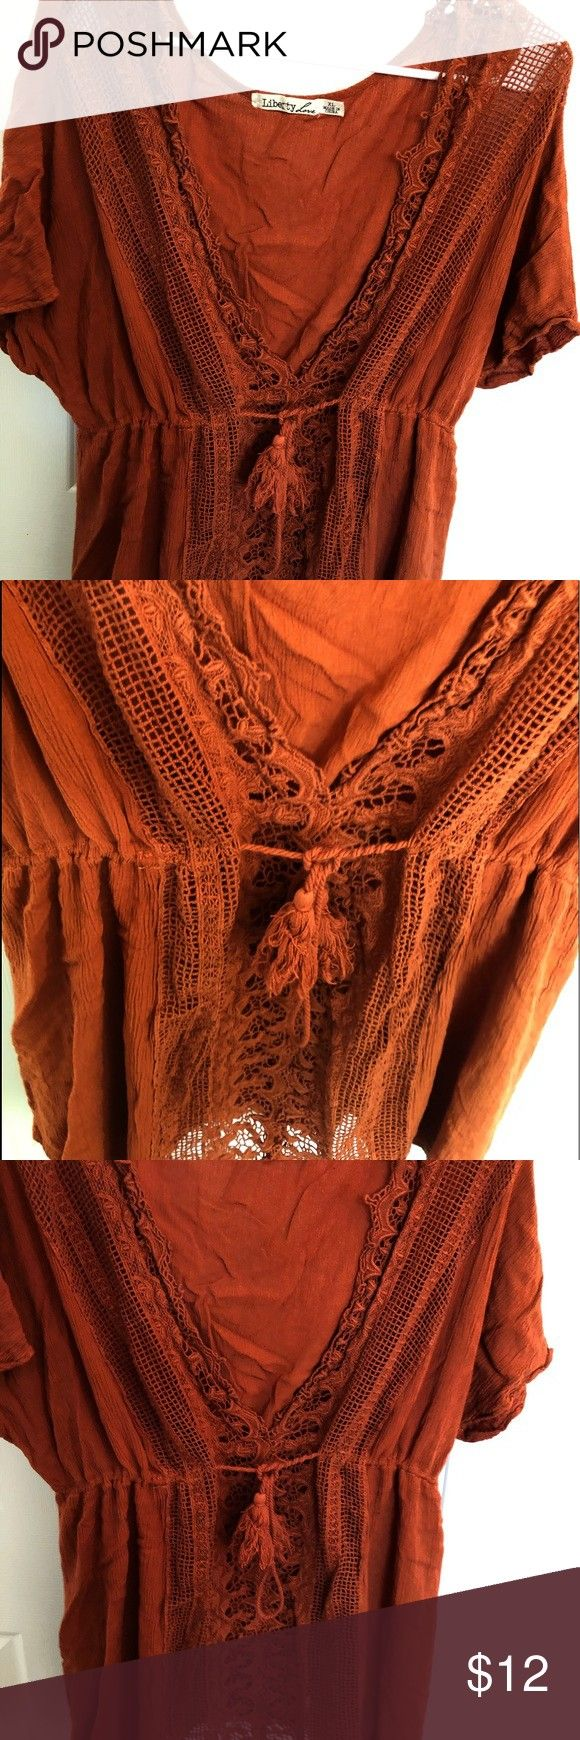 top You can wear it to the beach Wear a tank top under this top Liberty Love Swim Coverups Source by ittsruby coverupsOrange top You can wear it to the beach Wear a tank...